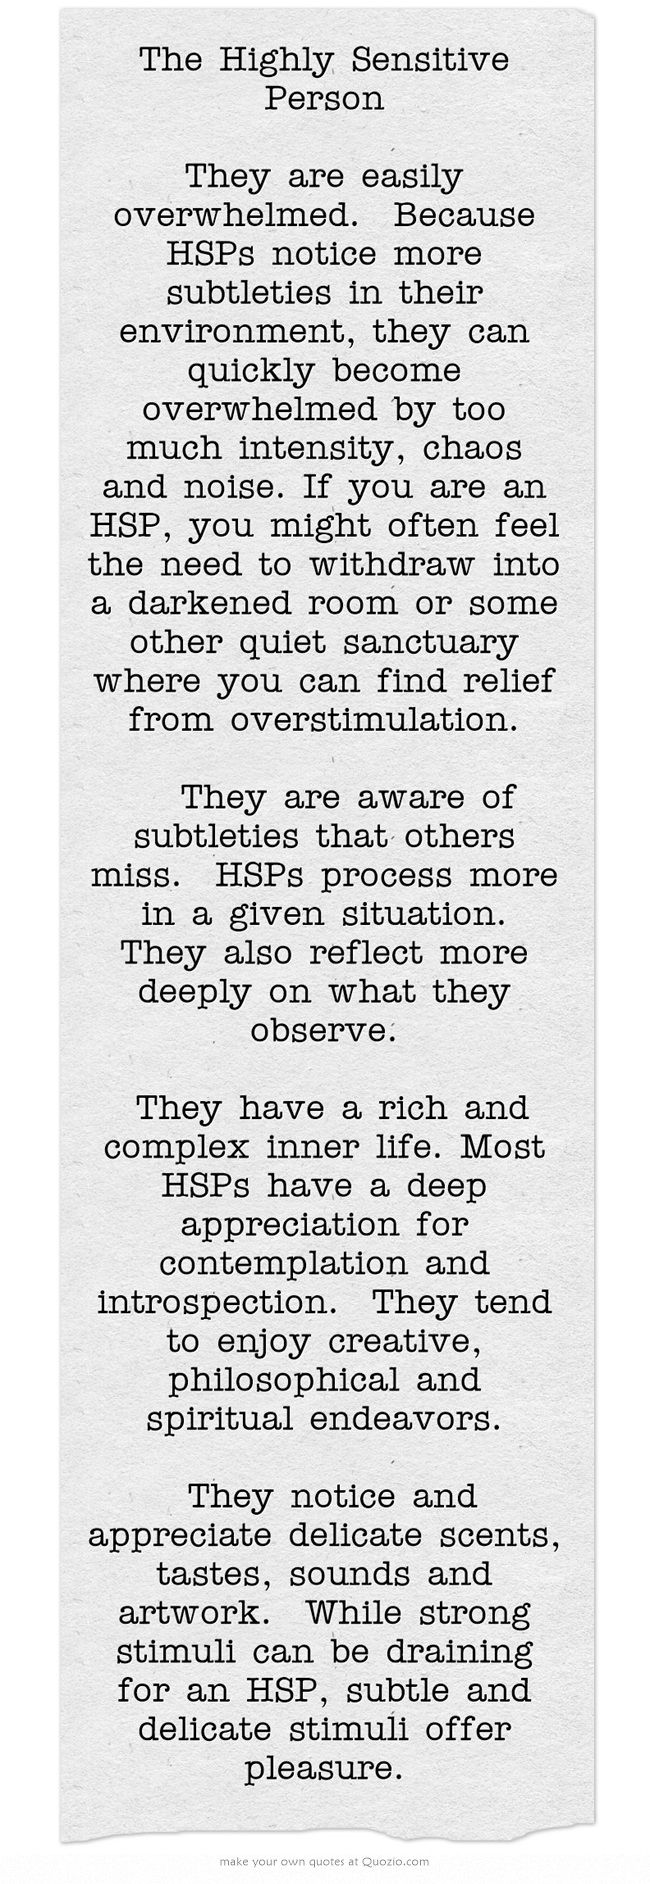 The Highly Sensitive Person   They are easily overwhelmed. Because HSPs notice more subtleties in their environment, they can quickly become overwhelmed by too much intensity, chaos and noise. If you are an HSP, you might often feel the need to withdraw into a darkened room or some other quiet sanctuary where you can find relief from overstimulation.   They are aware of subtleties that others miss. HSPs process more in a given situation. They also reflect more deeply...